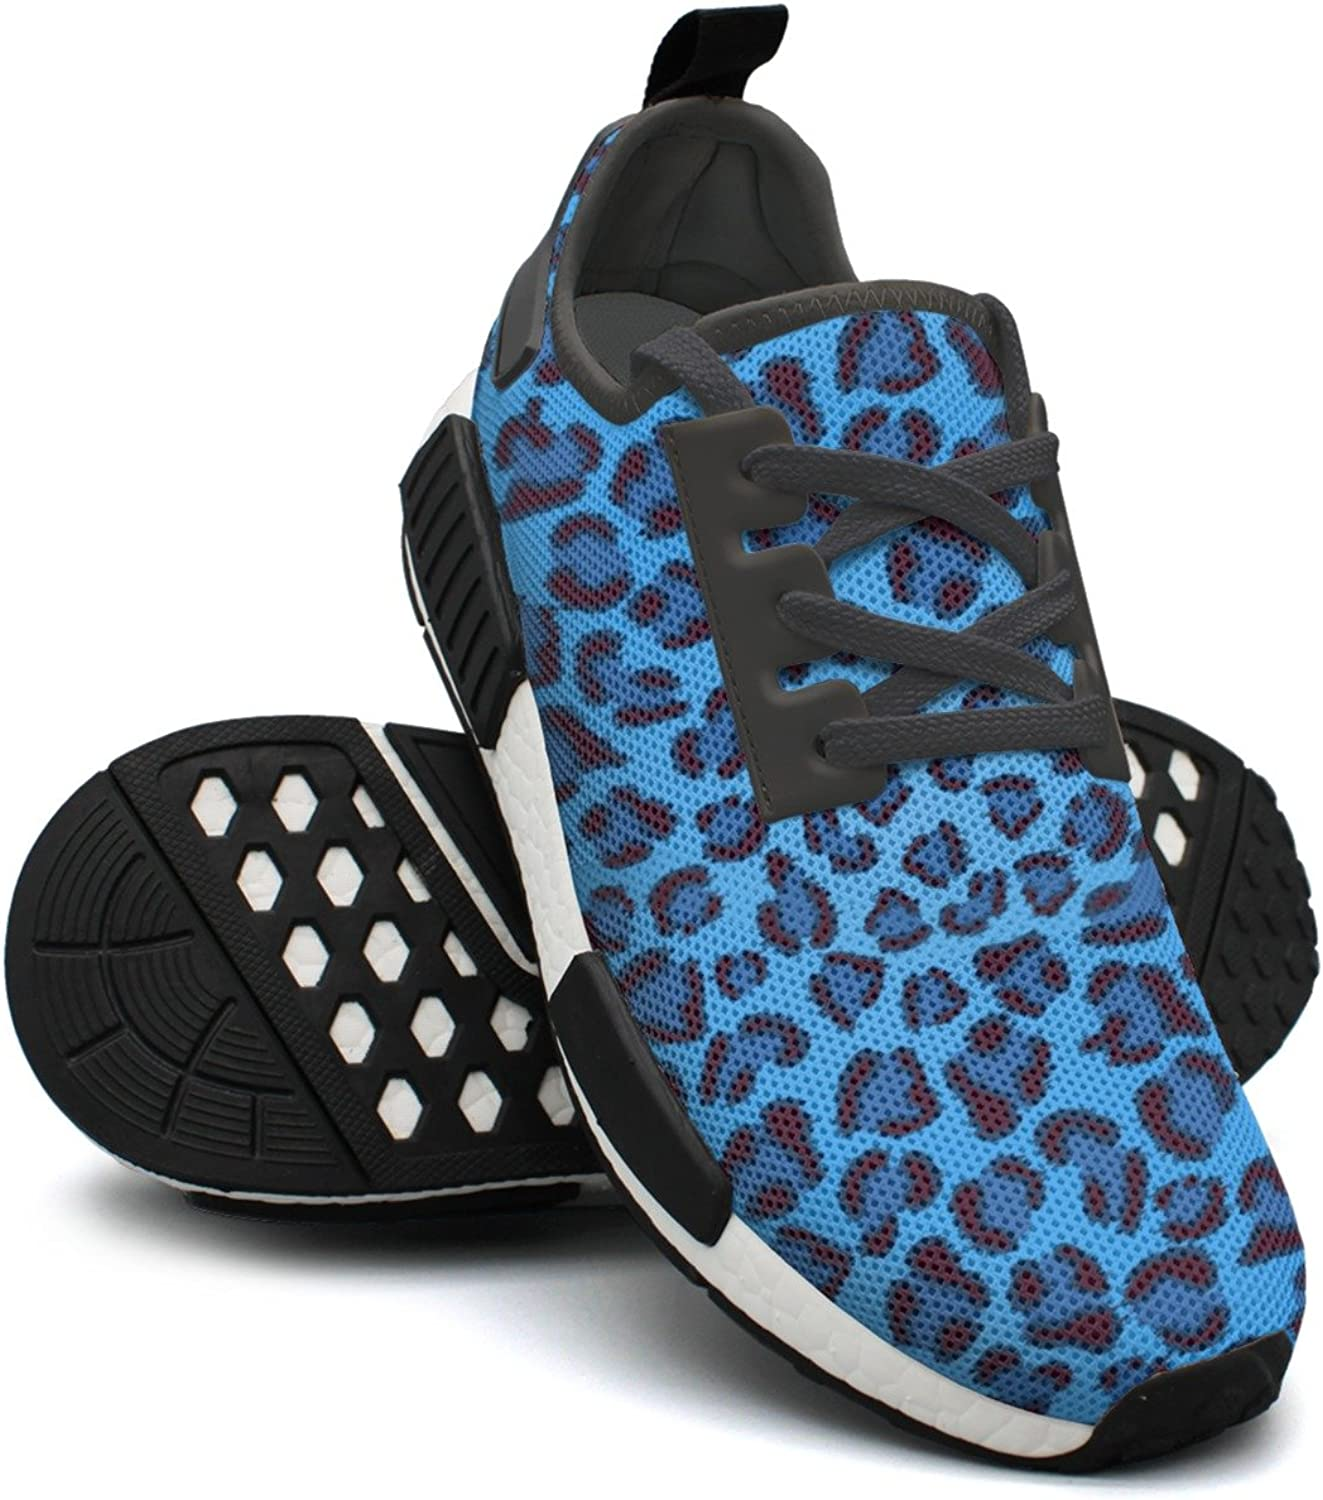 bluee Leopard Print Gym Jogging shoes for Women NMD